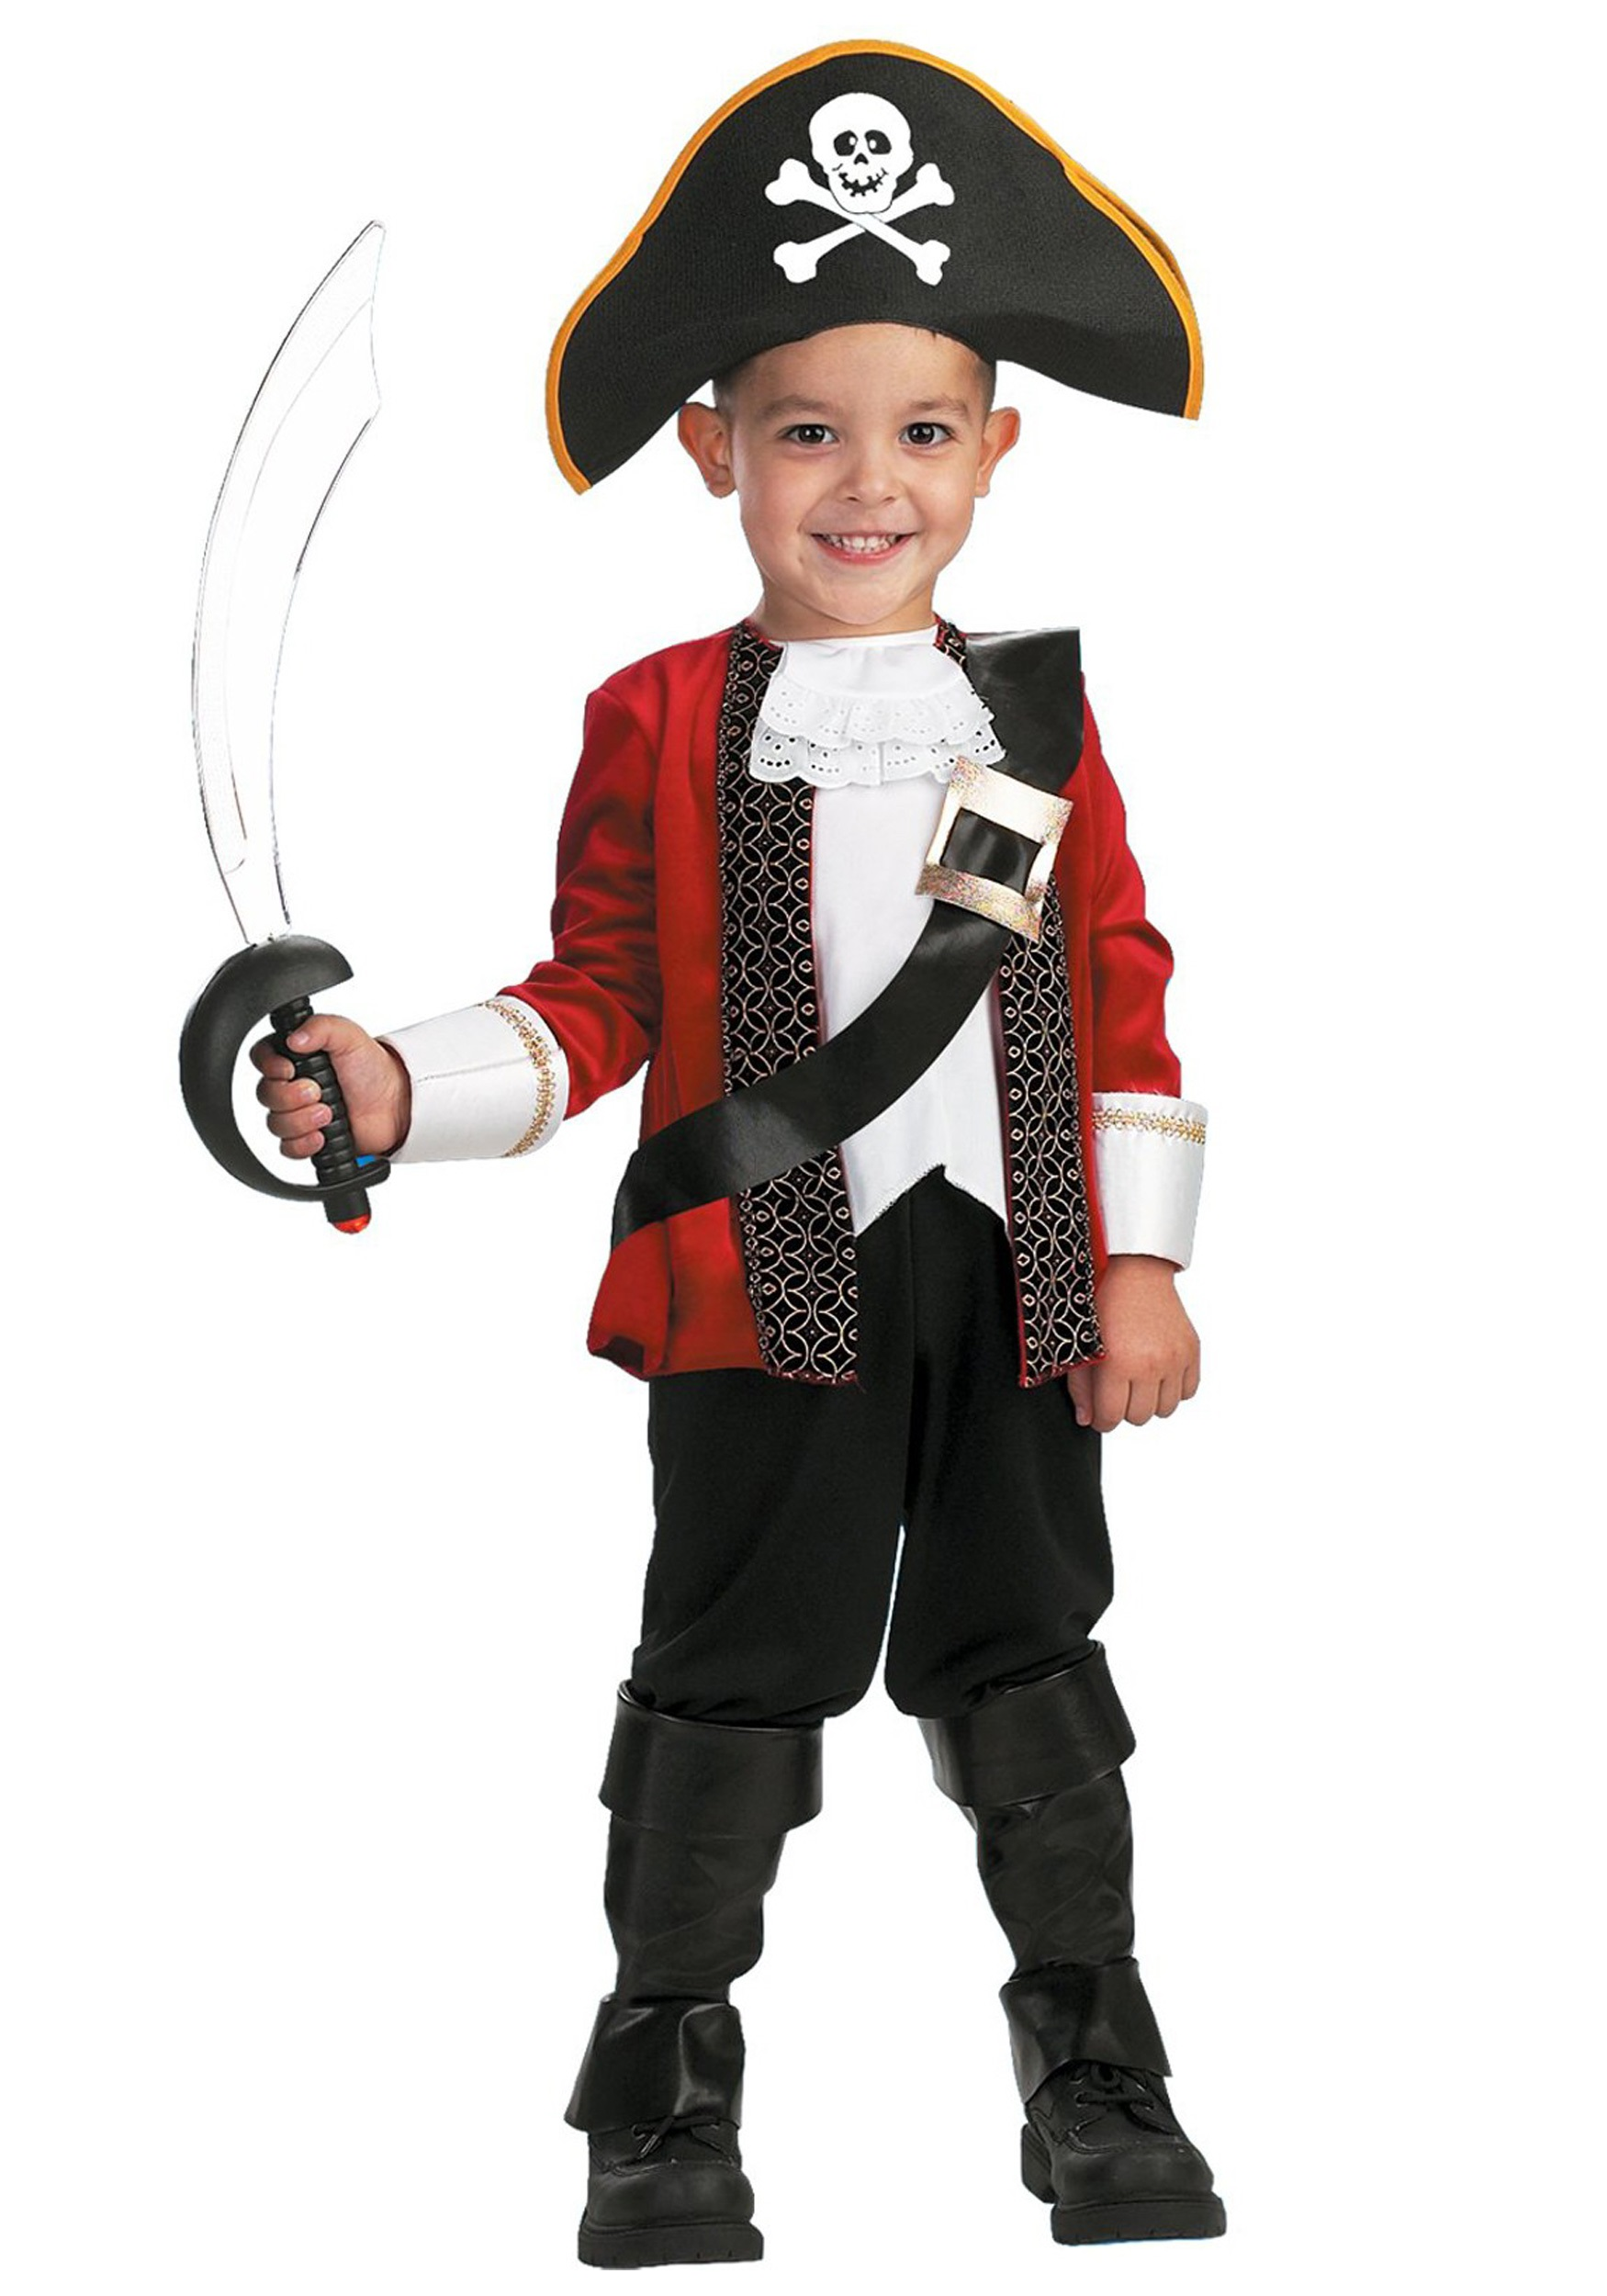 sc 1 st  Halloween Costumes : boys pirate halloween costume  - Germanpascual.Com